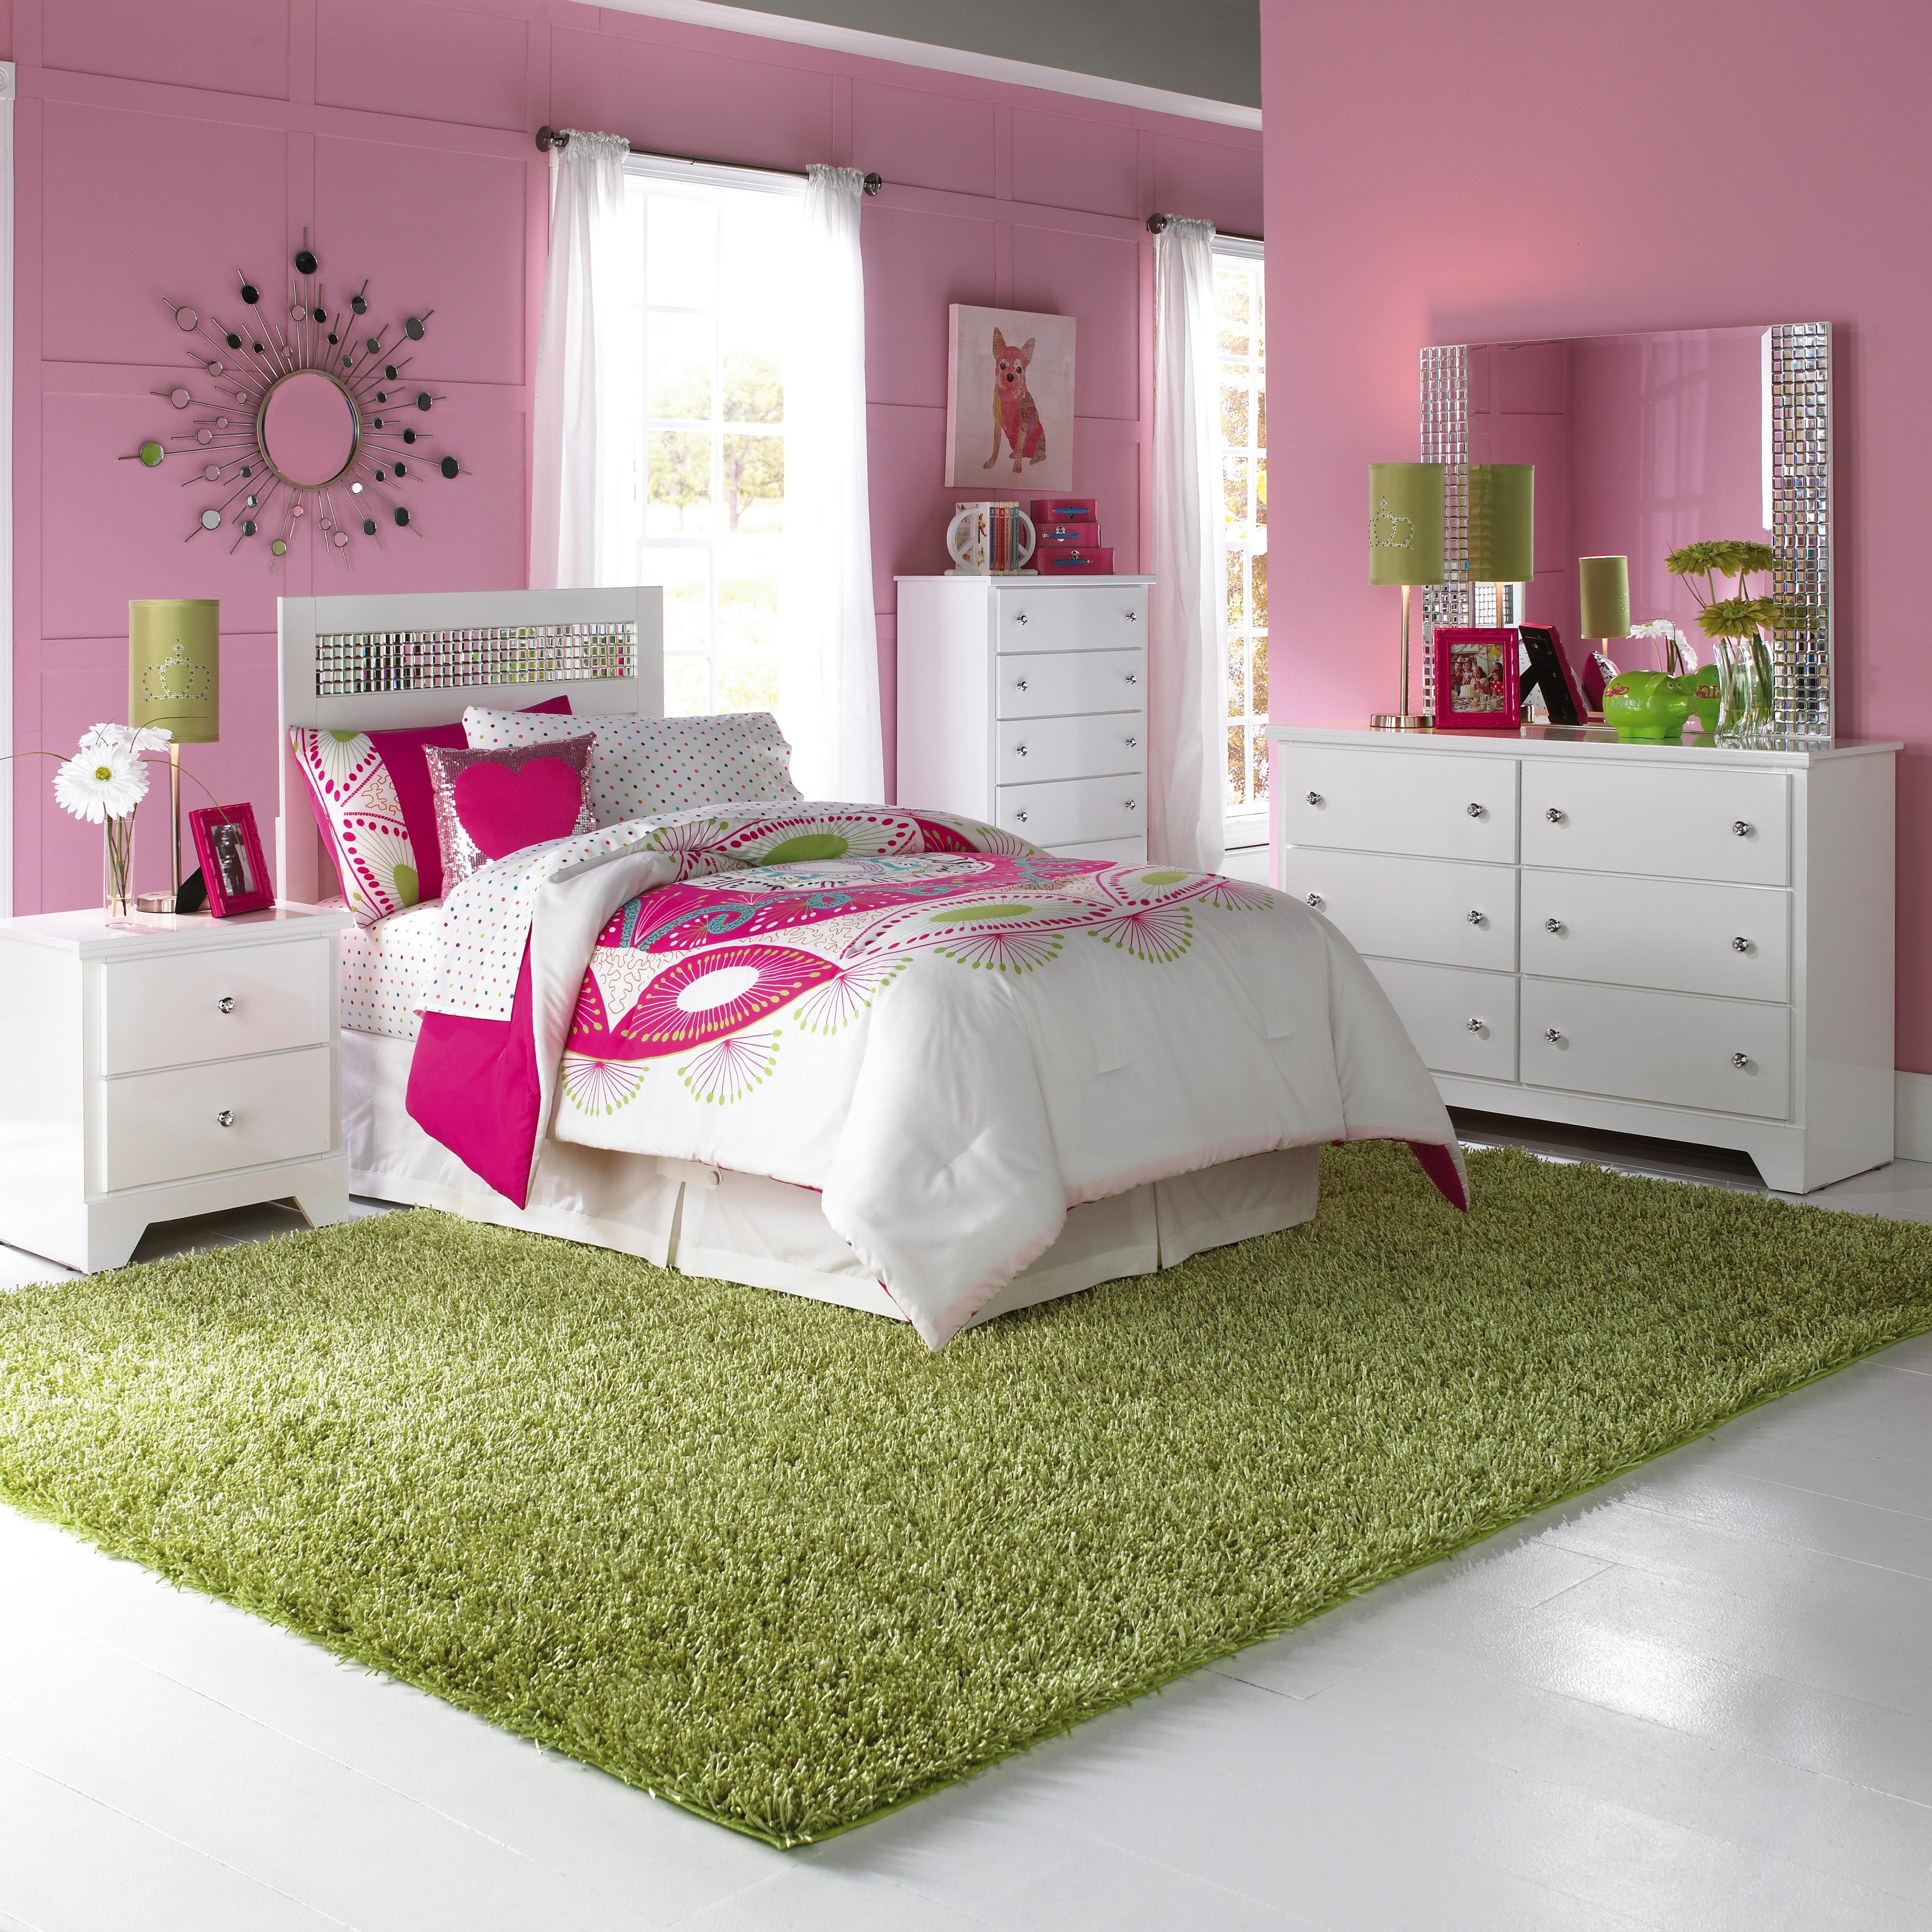 Badcock Bedroom Set | Baddcock Furniture | Badcock Bedroom ...